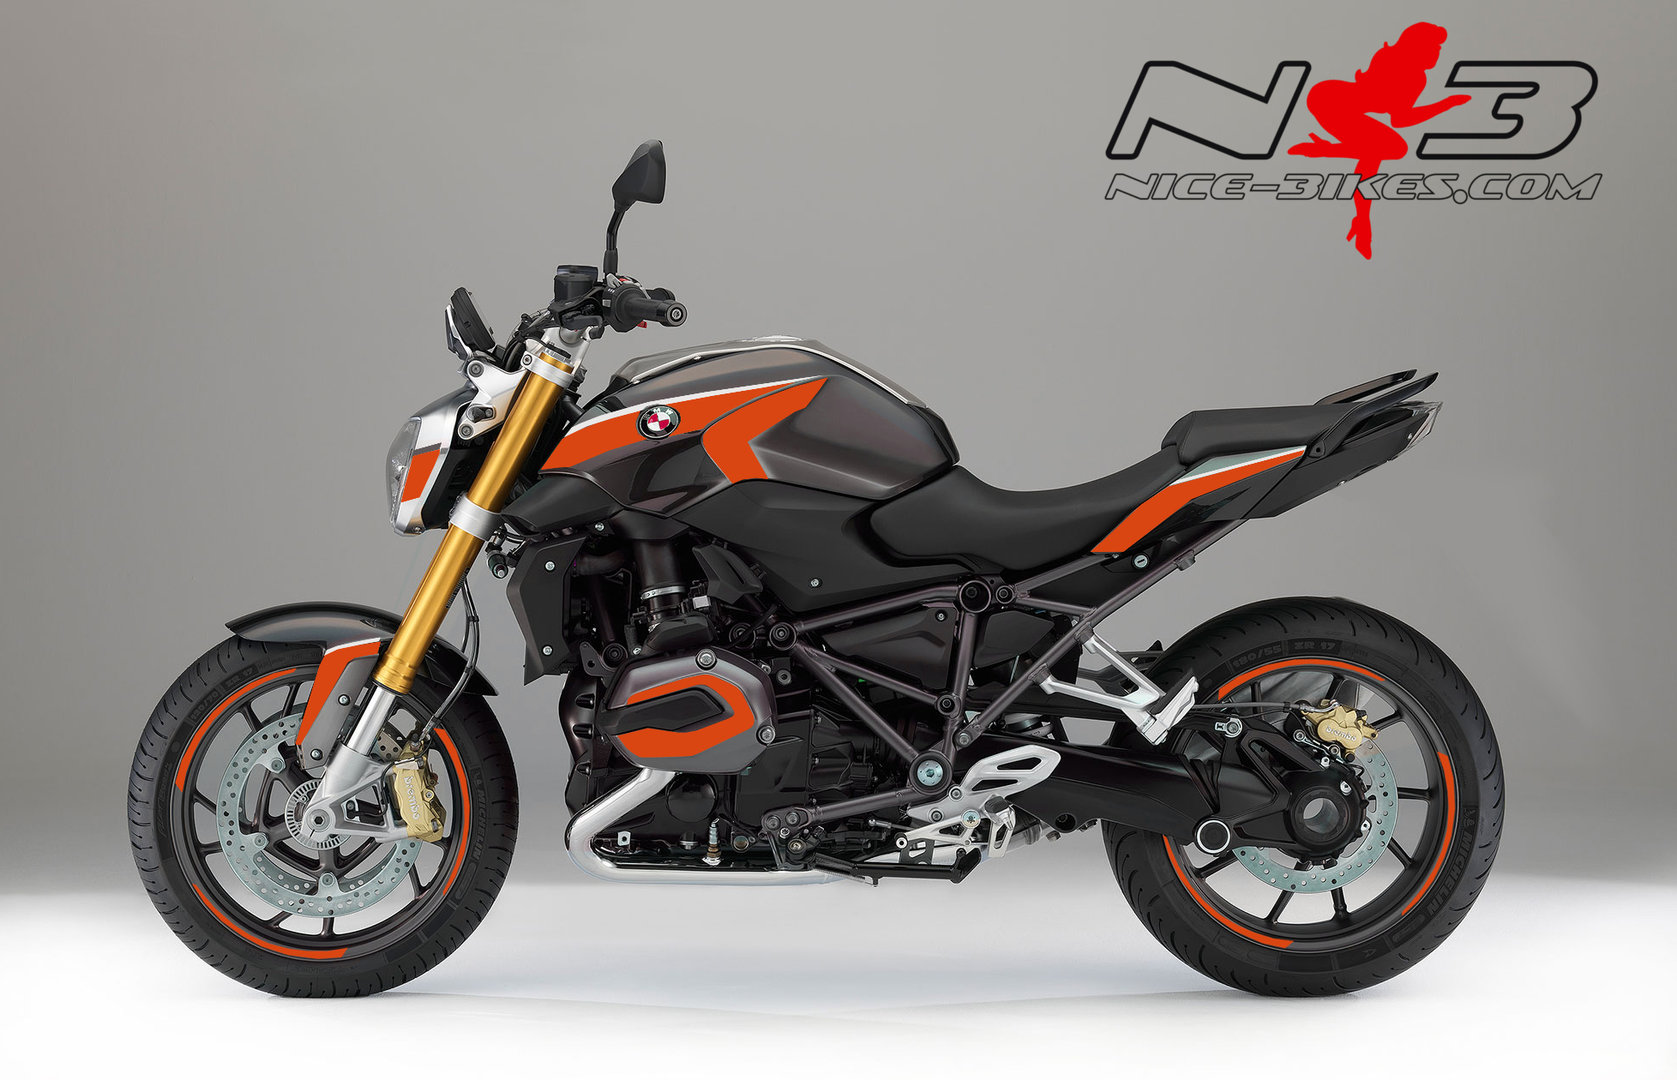 BMW R1200R Edition Orange auf grauer Maschine